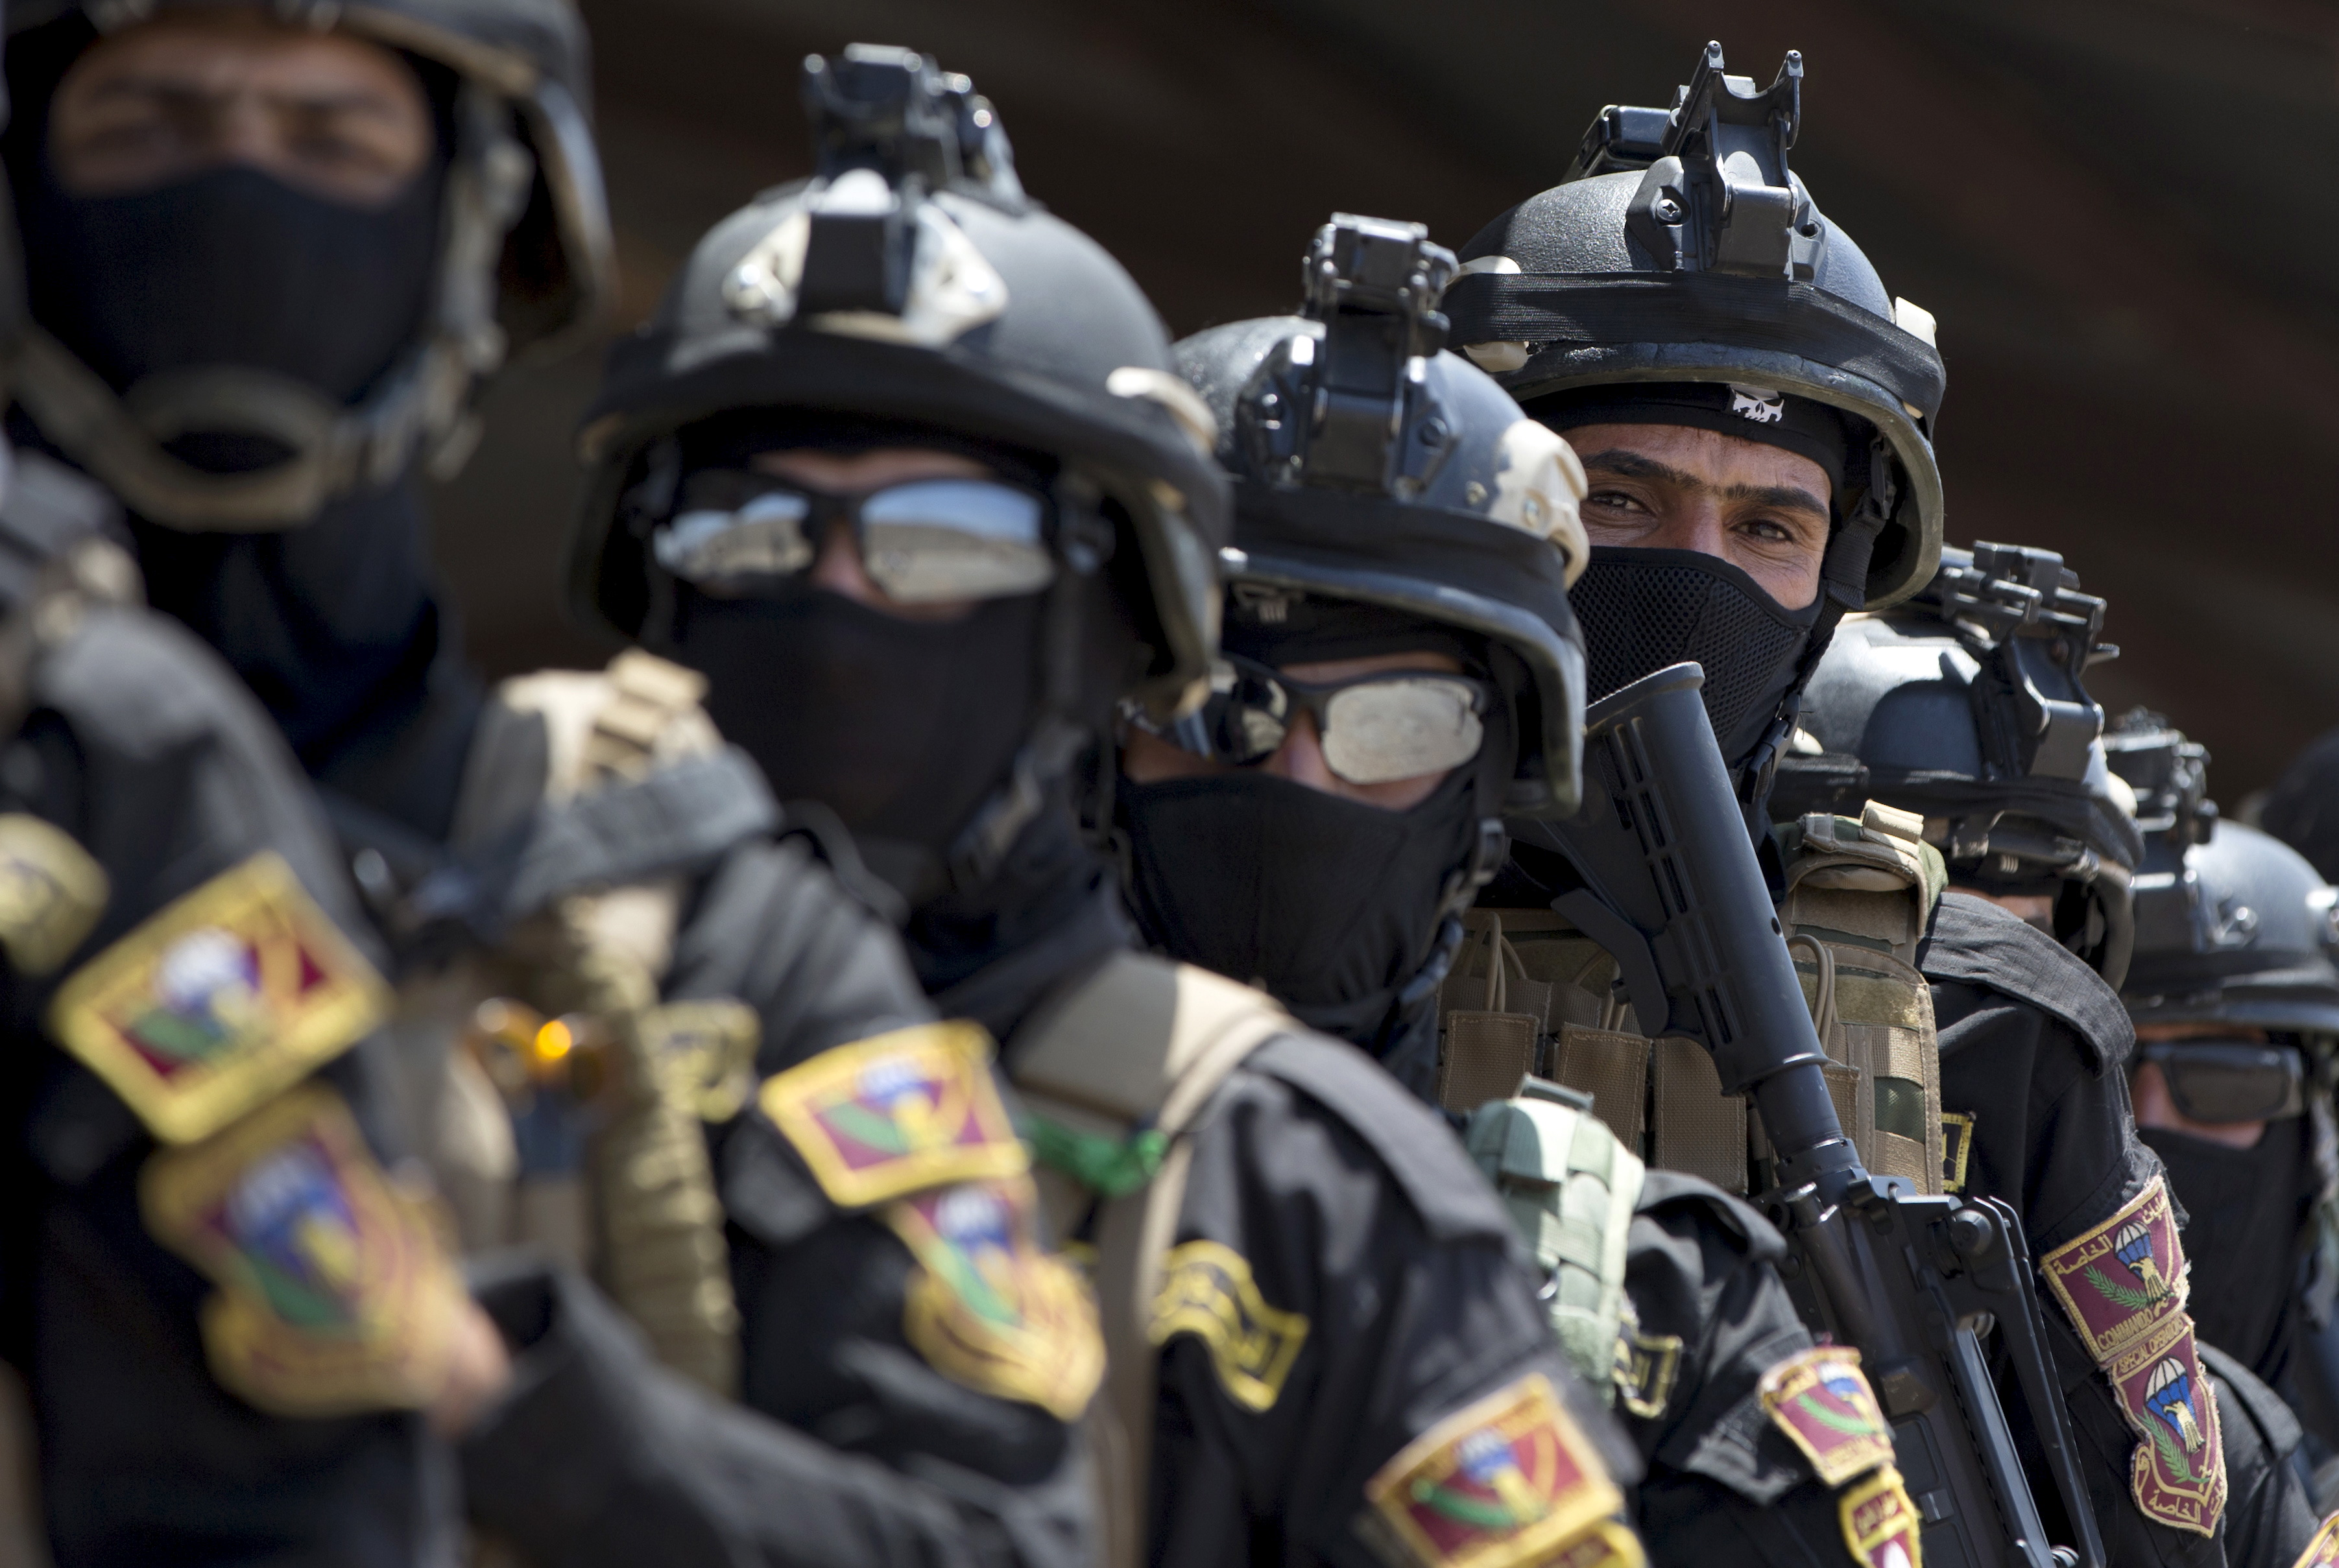 The Iraqi Counter Terrorism Service forces participate in a training exercise as U.S. Defense Secretary Ash Carter observes at the Iraqi Counter Terrorism Service Academy on the Baghdad Airport Complex in Baghdad, Iraq, July 23, 2015.